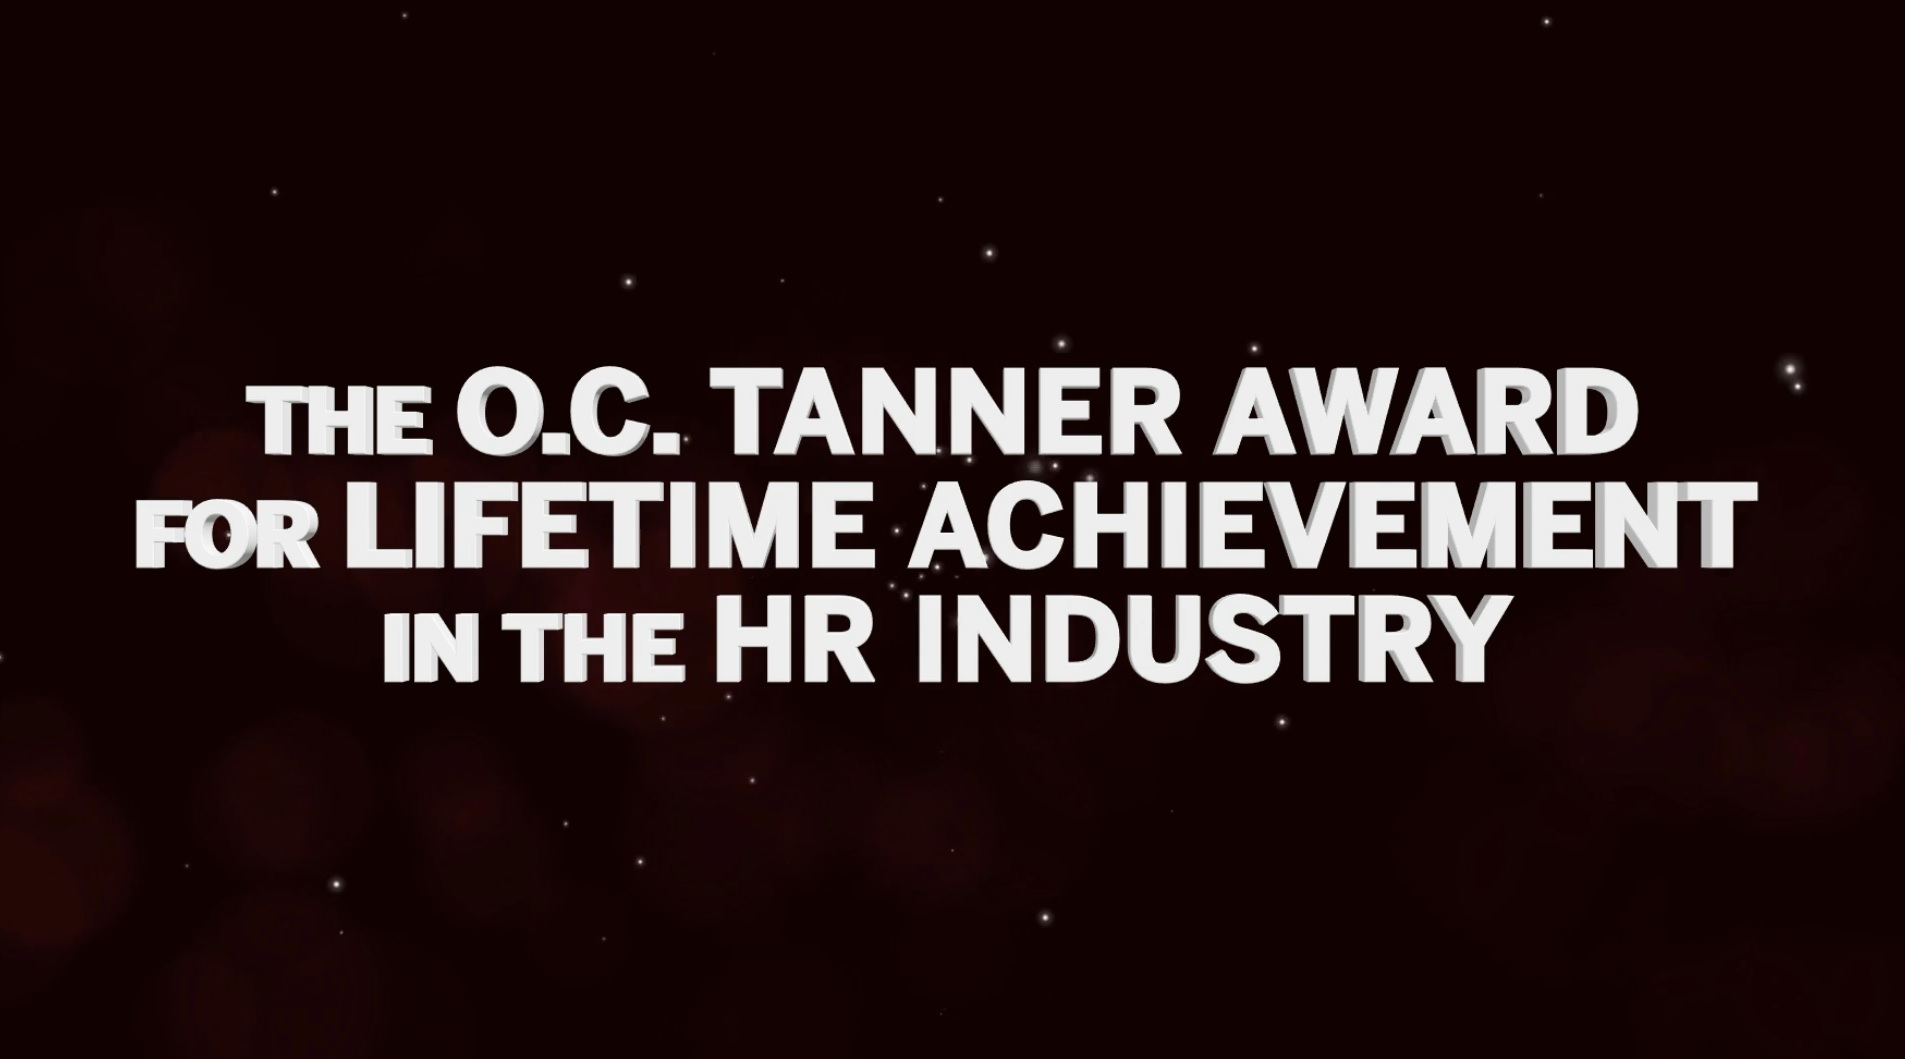 The O.C. Tanner award for lifetime achievement in the HR industry